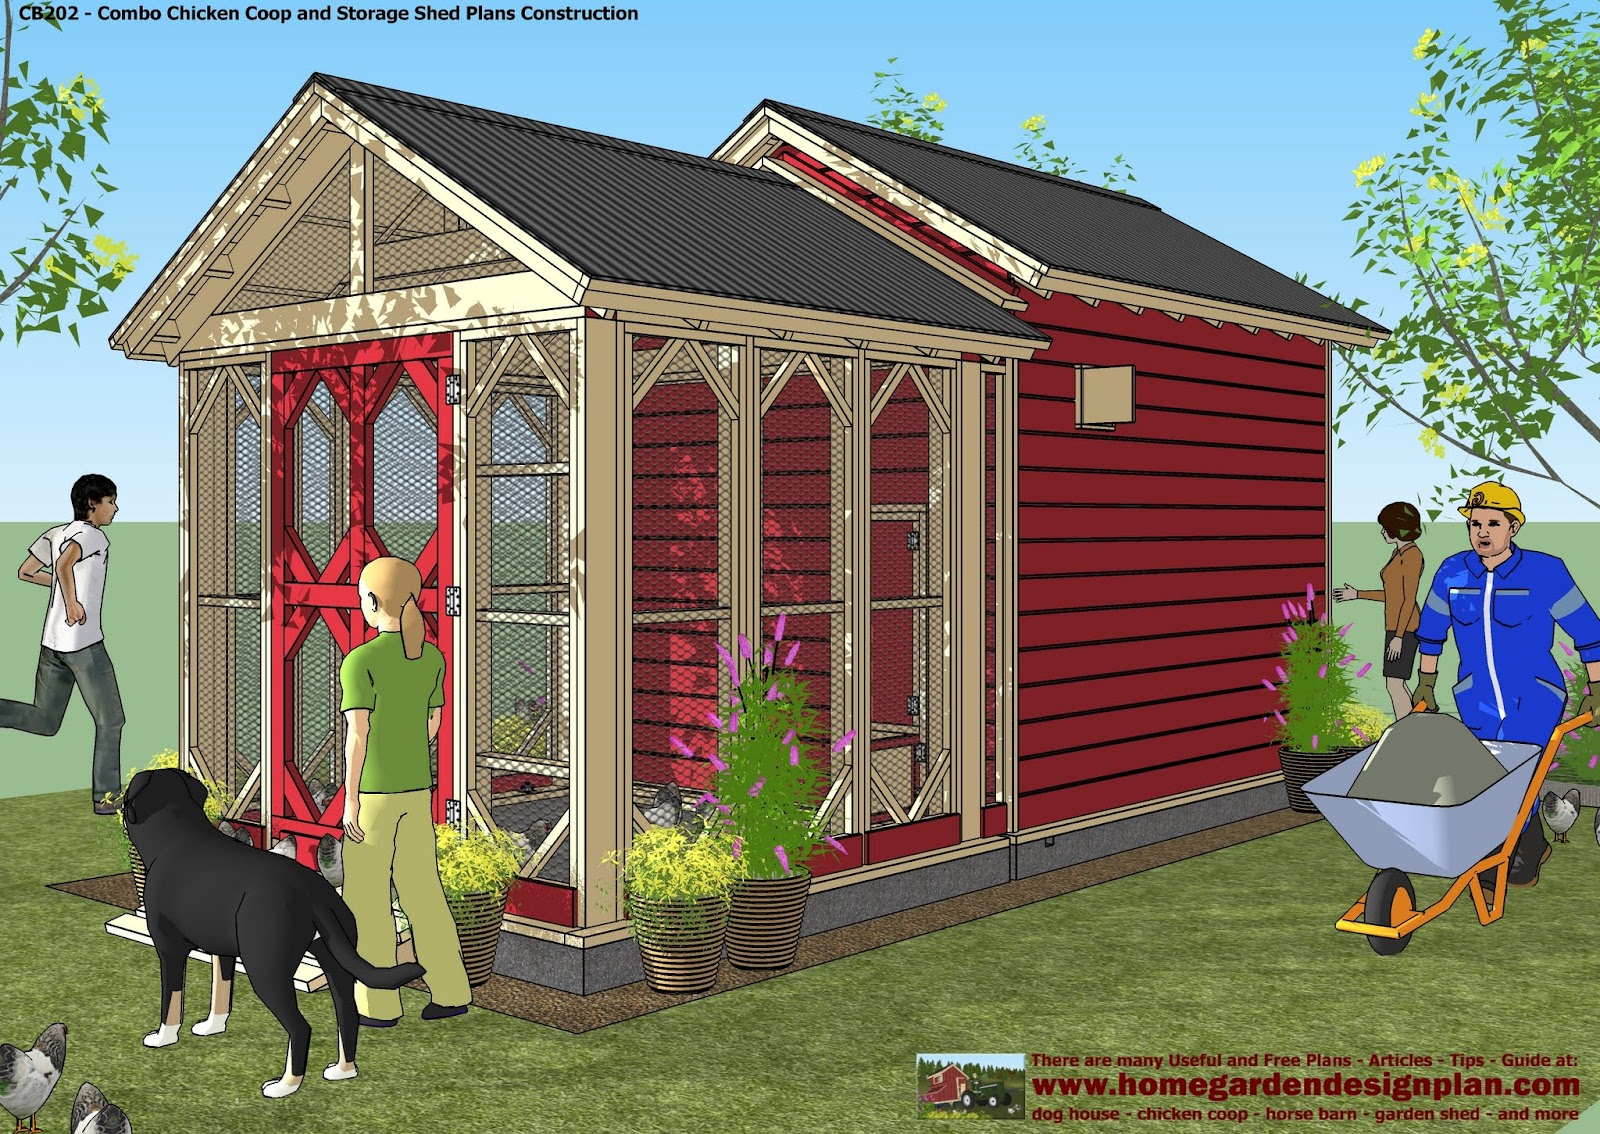 Home Garden Plans: CB202   Combo Plans   Chicken Coop Plans Construction +  Garden Sheds Plans   Storage Sheds Plans Construction